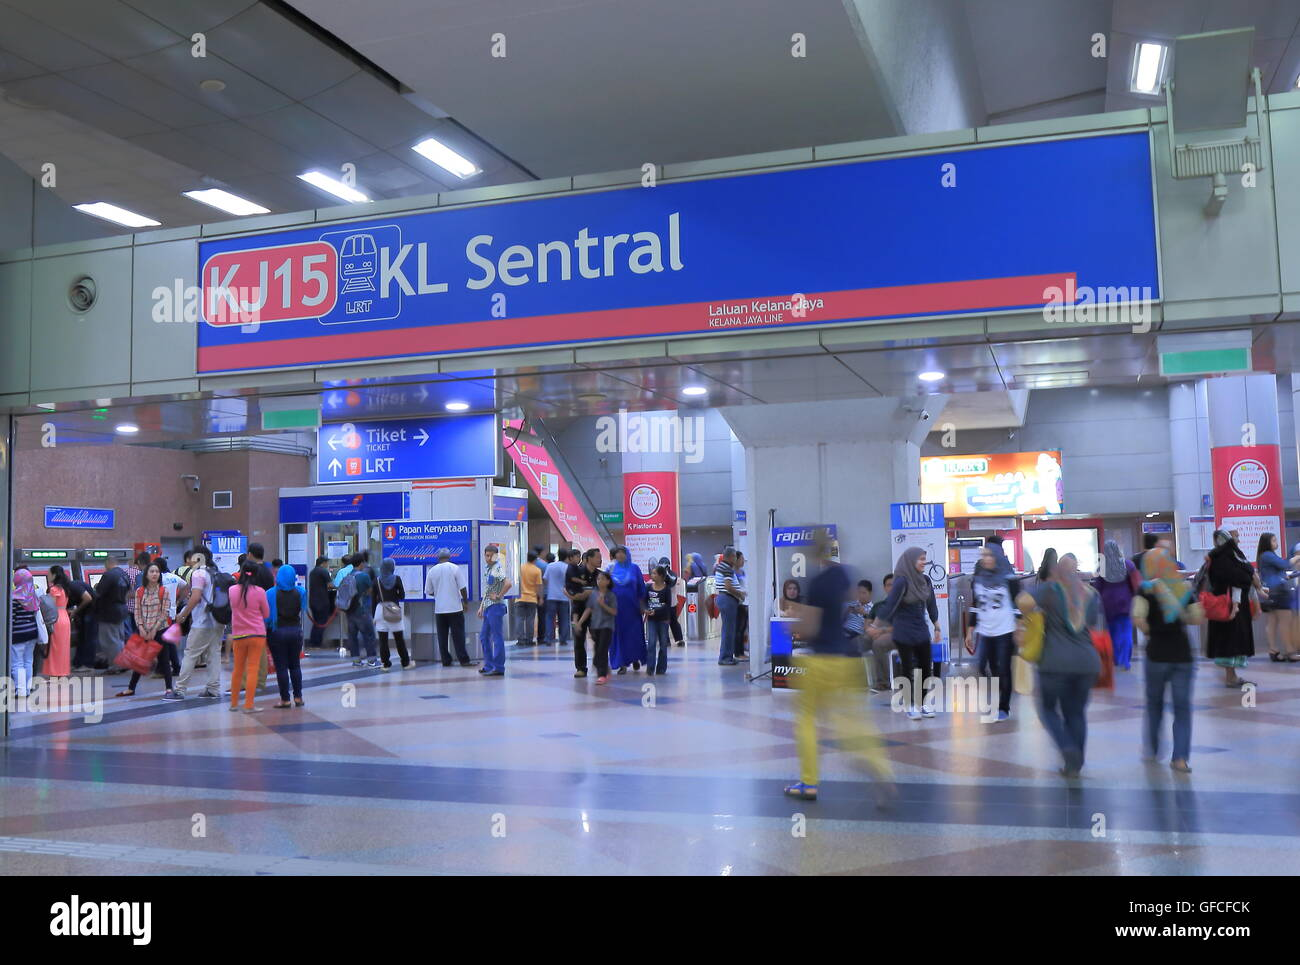 People commute at KL Sentral Station in Kuala Lumpur Malaysia. - Stock Image